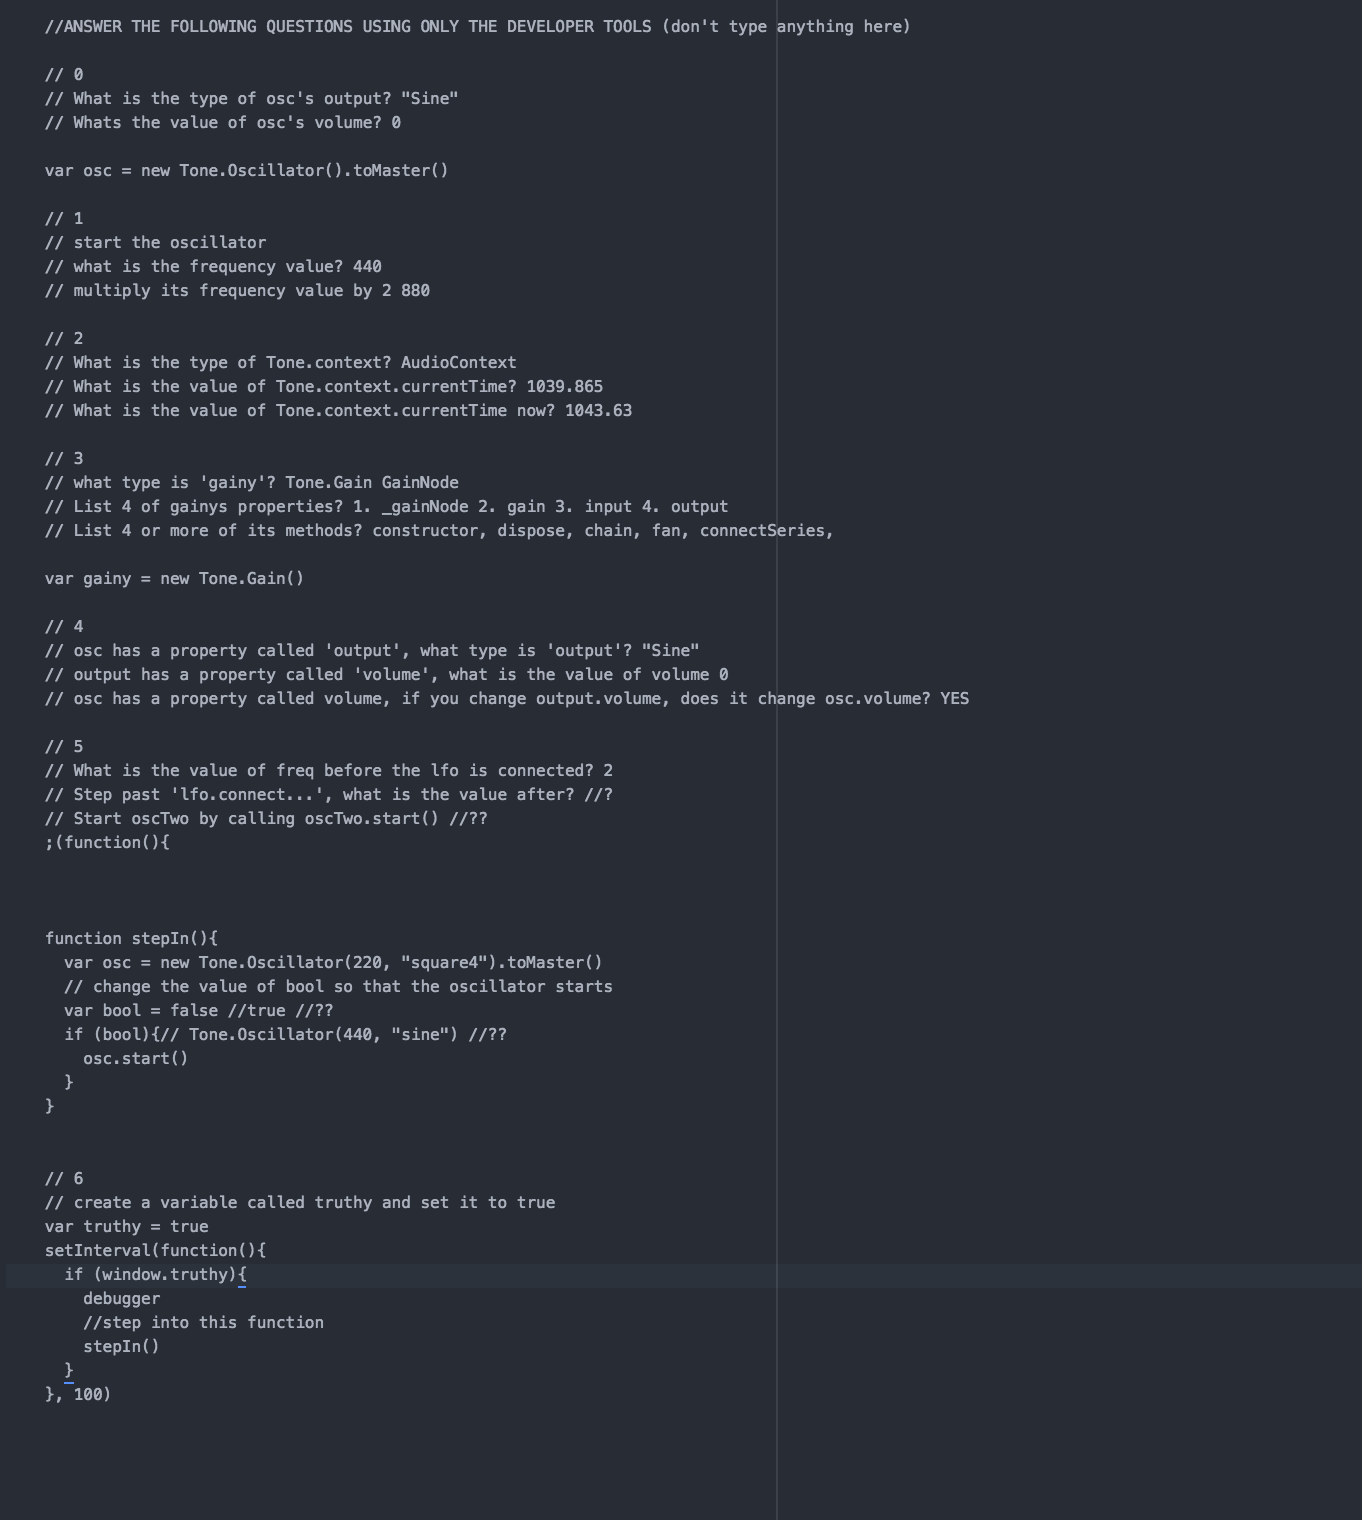 """I was able to answer most of the questions on this activity. I had difficulty with question 5, """"Step past 'lfo.connect…', what is the value? I wasn't able to figure that one out or call oscTwo. For the function I made the values for frequency and type to be true by making it 440 and a sine. I wasn't sure how to do question 6, I created a variable called truthy, I would like to know how to construct these and make them operate as it is unclear to what I am supposed to do."""